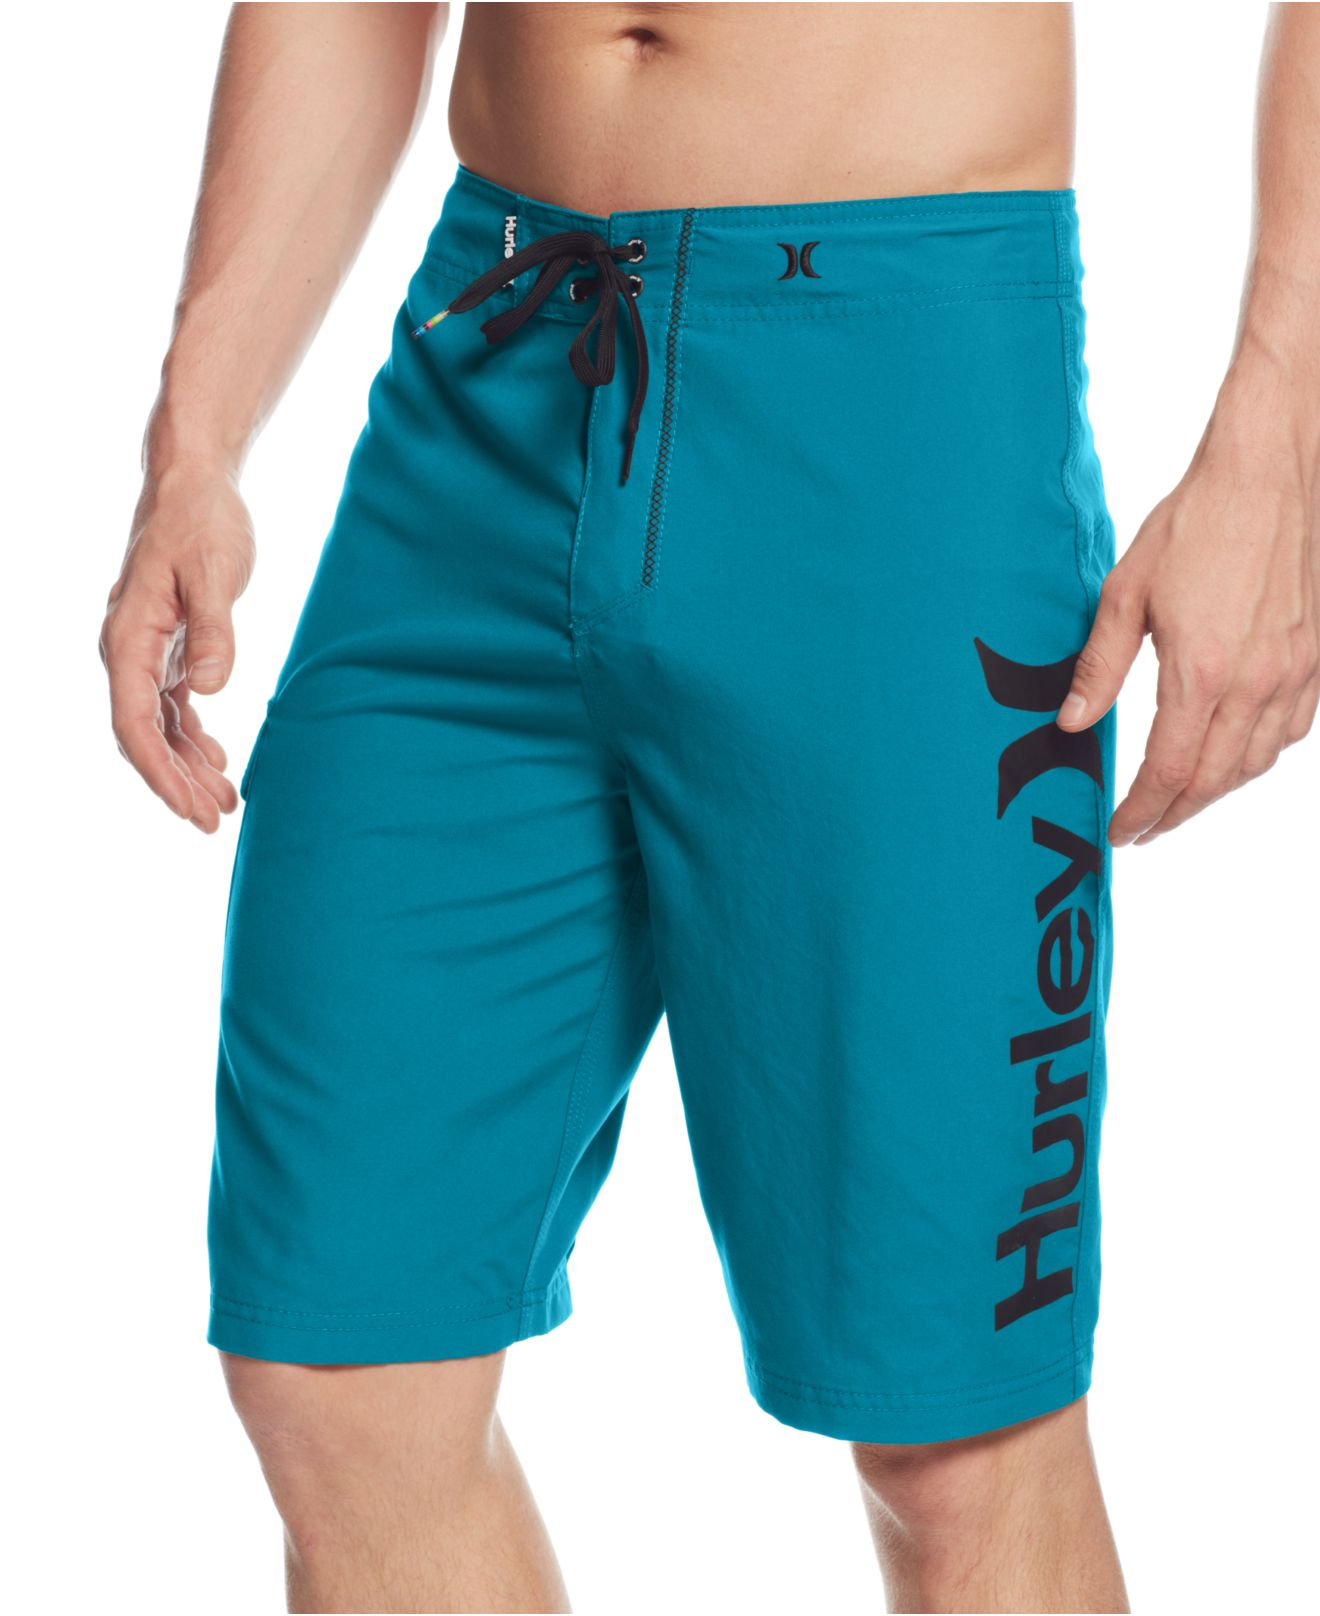 Discover the best Men's Board Shorts in Best Sellers. Find the top most popular items in Amazon Best Sellers.